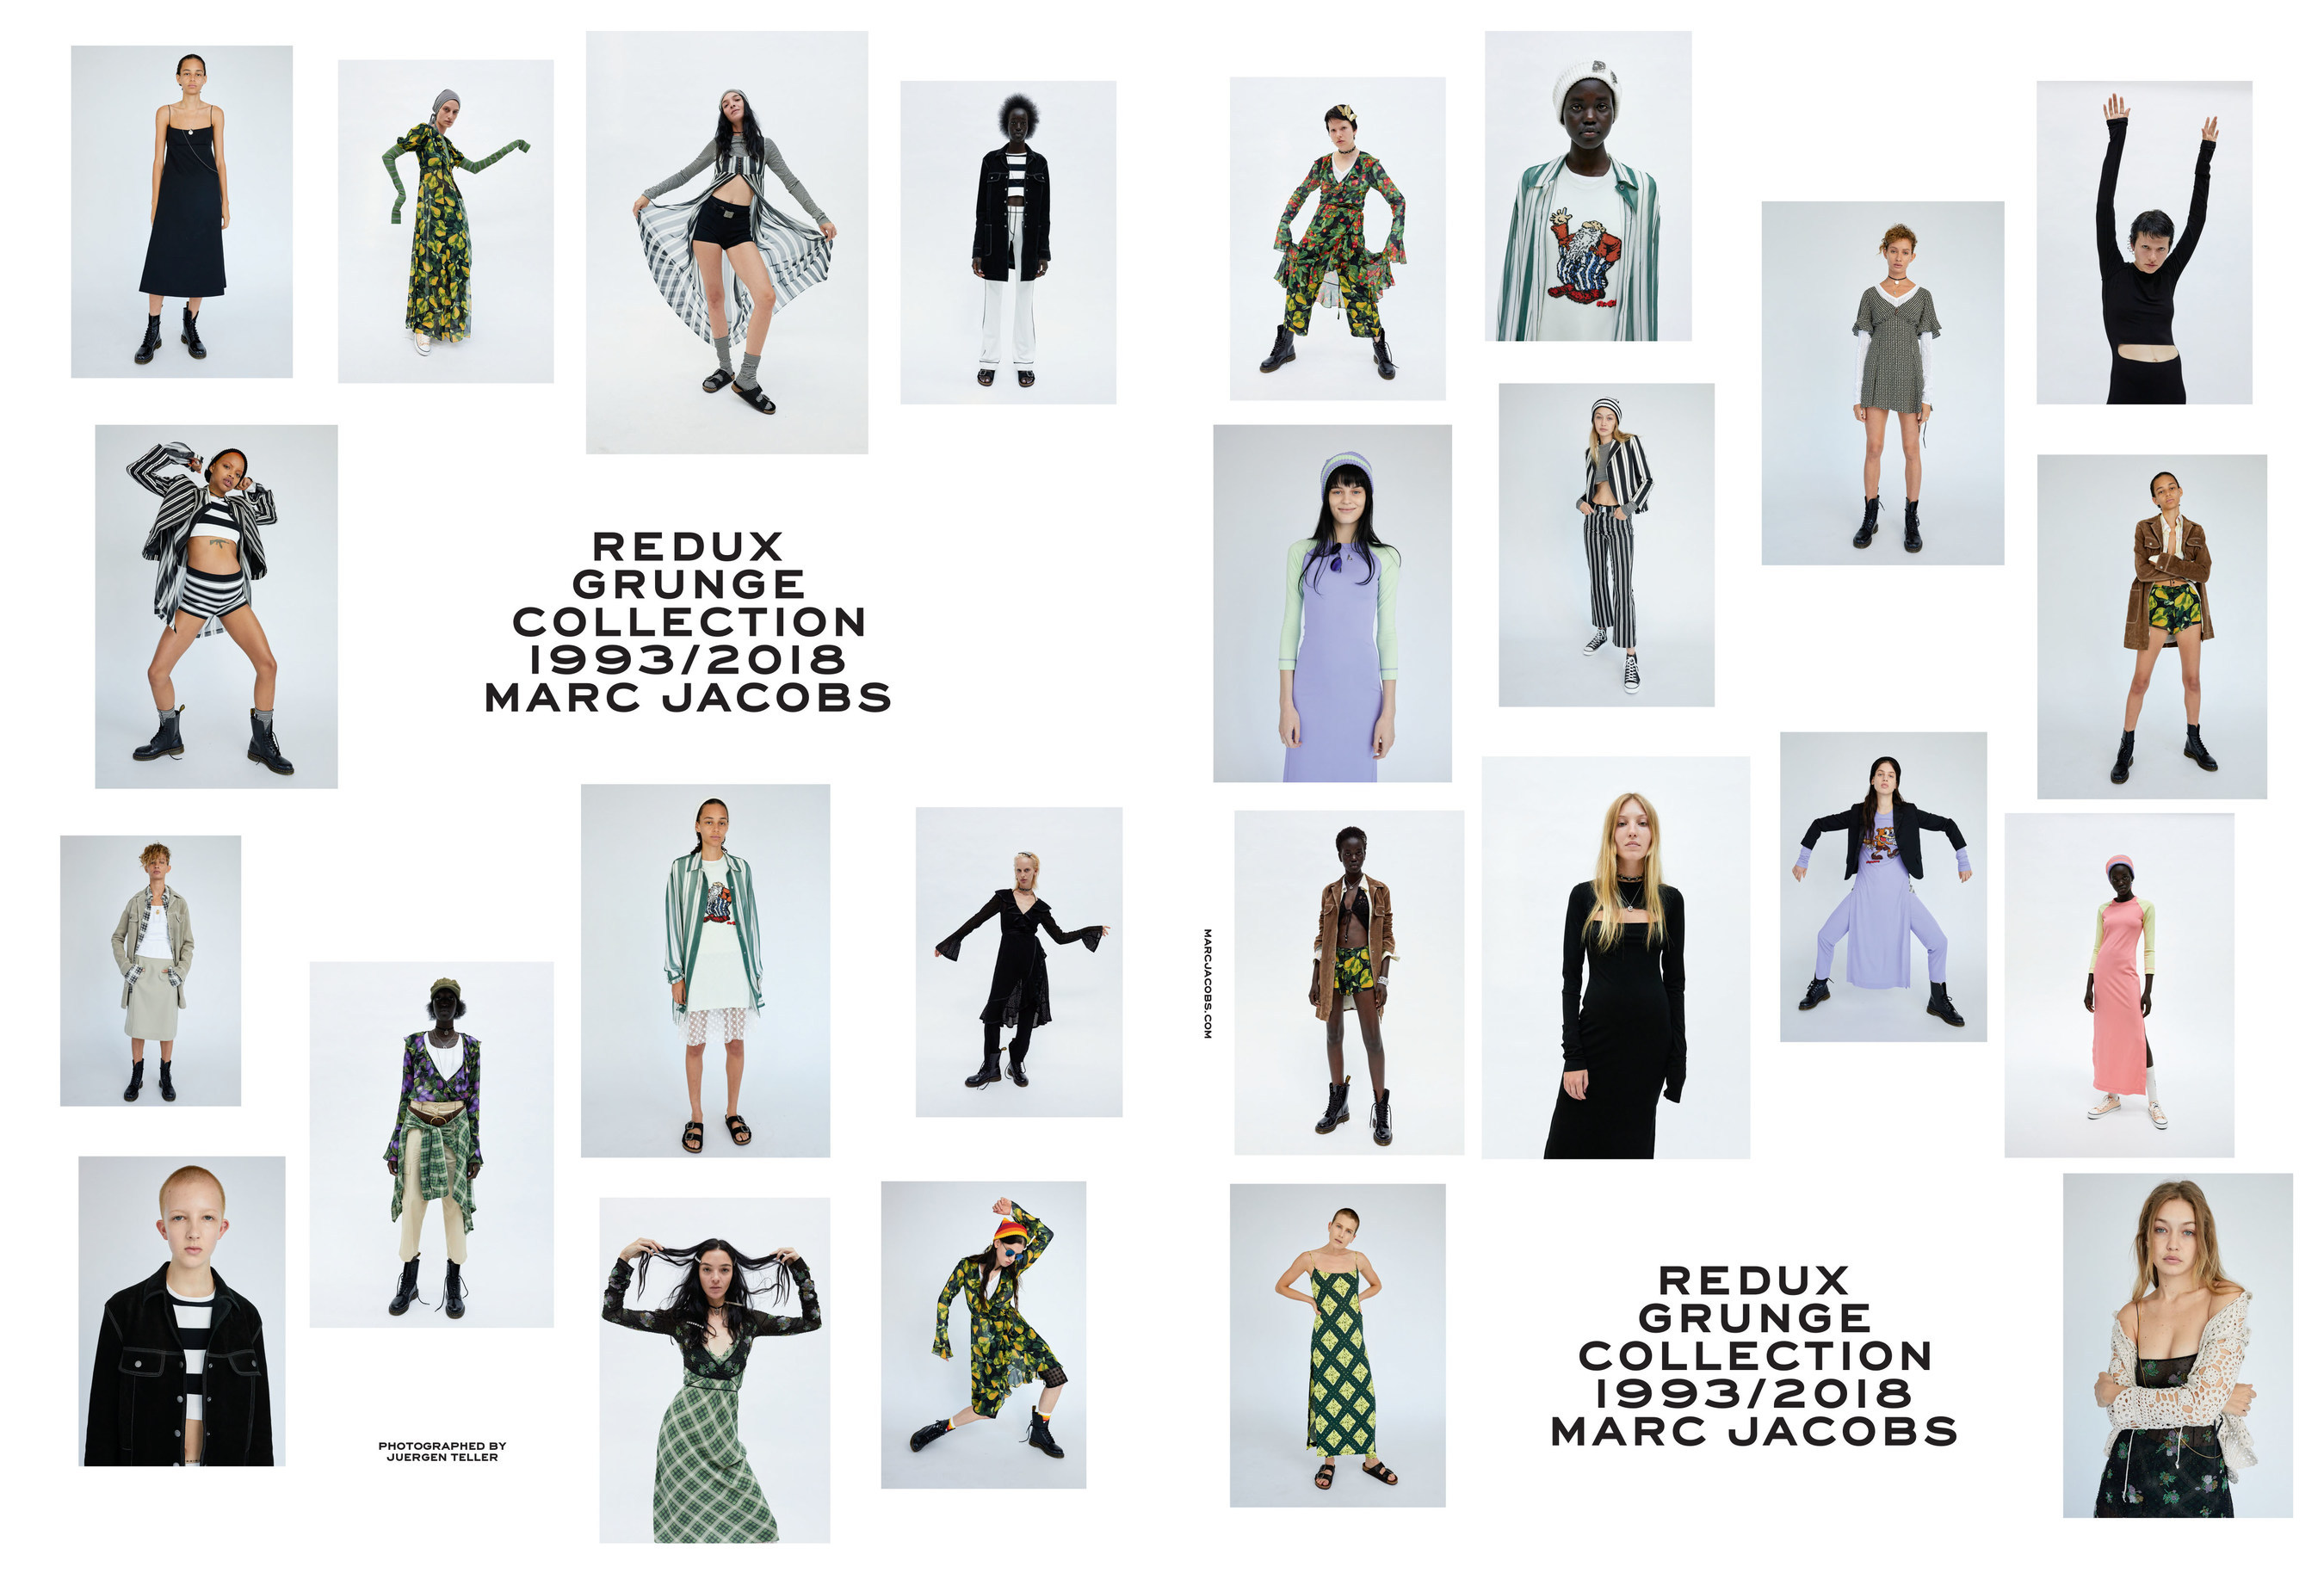 marc jacobs, grunge